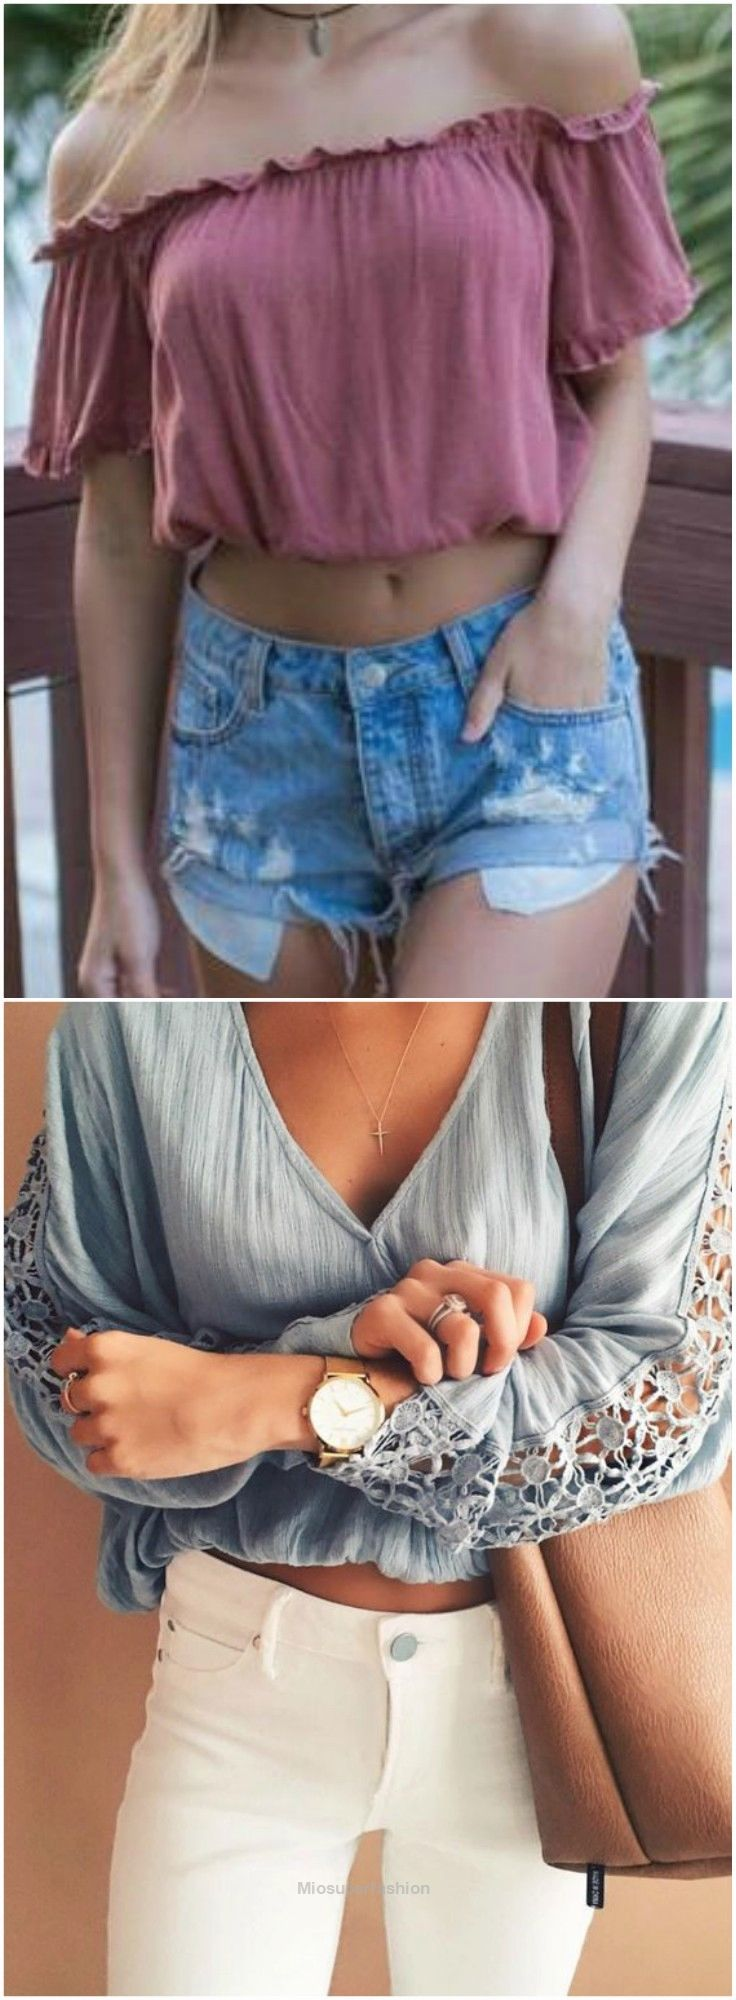 season street fashion styles, summer style 2017 pinterest,swimming out-fit, cool outfits for middle school,cute outfits summer,lovable outfits for winter time,school suitable outfits for summer time,cute back to high school outfits for high school,what to